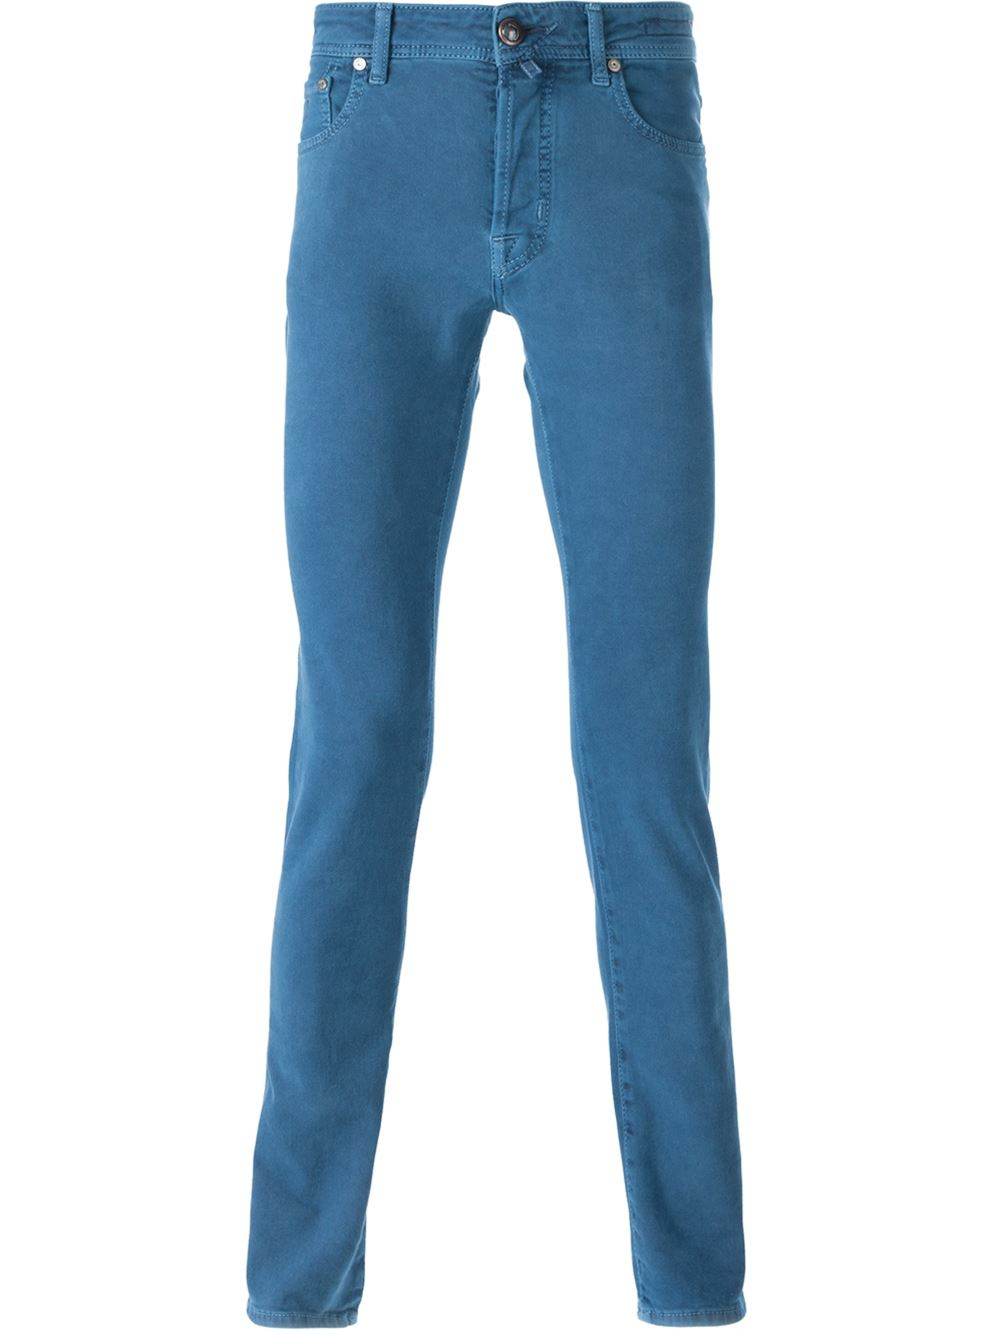 jacob cohen slim fit jeans in blue for men lyst. Black Bedroom Furniture Sets. Home Design Ideas